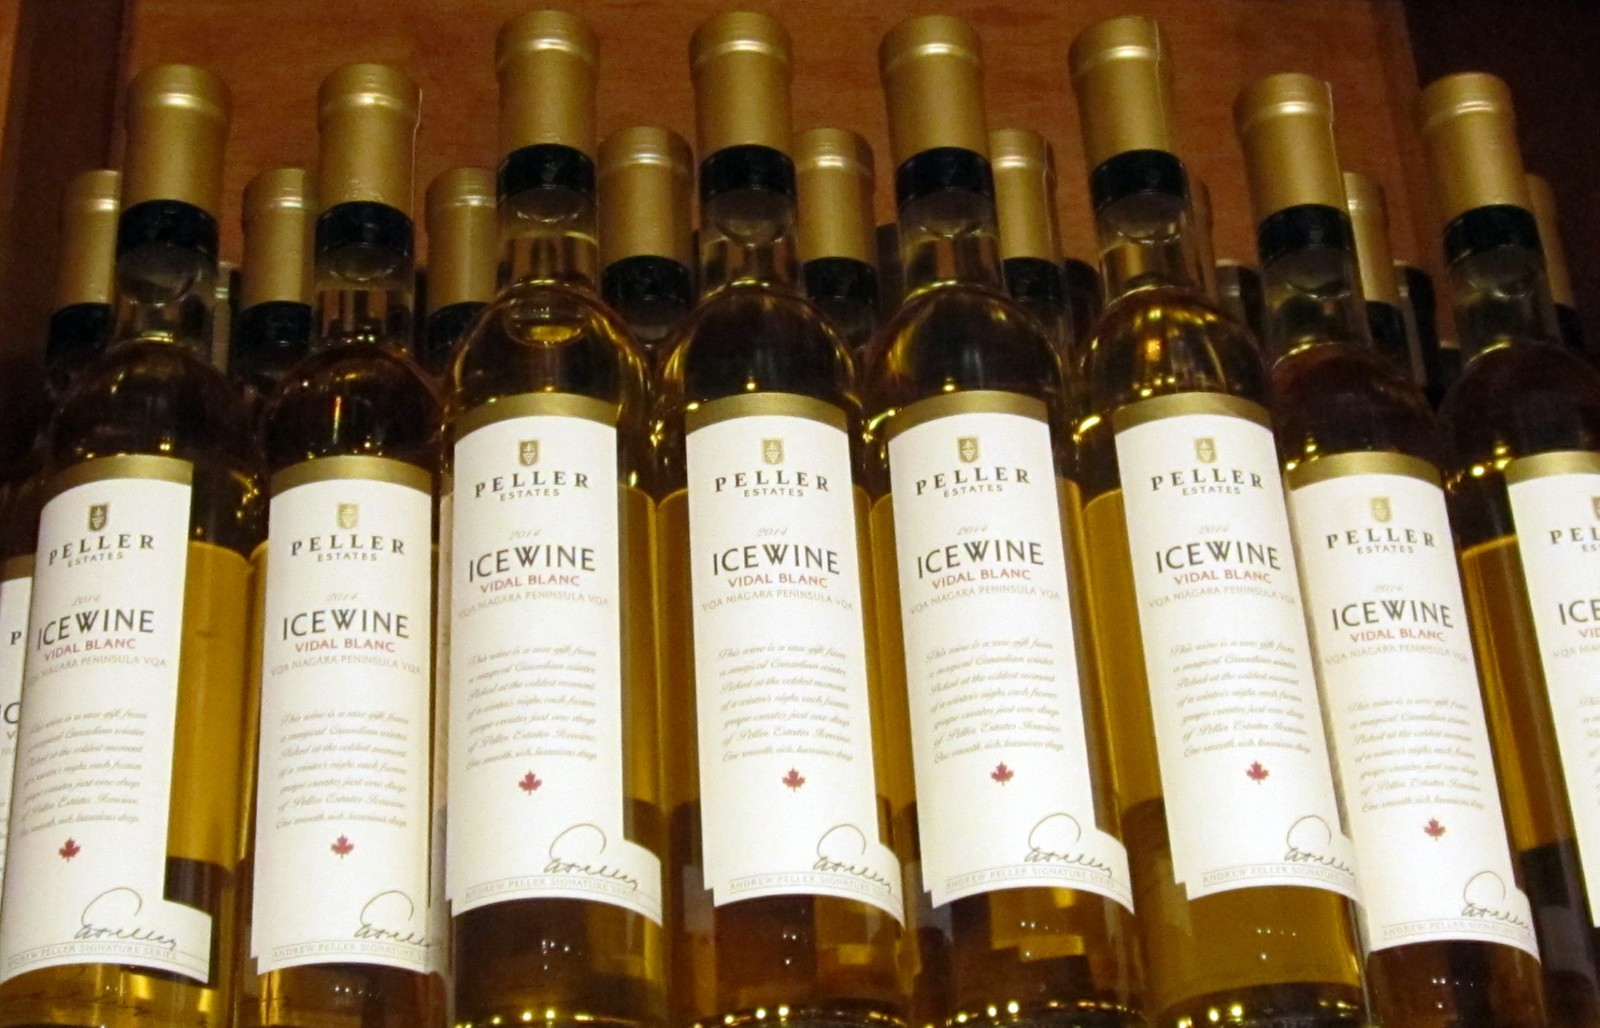 Bottles of wine from Peller Estate. (Emeri Krawczyk/Special to The News)